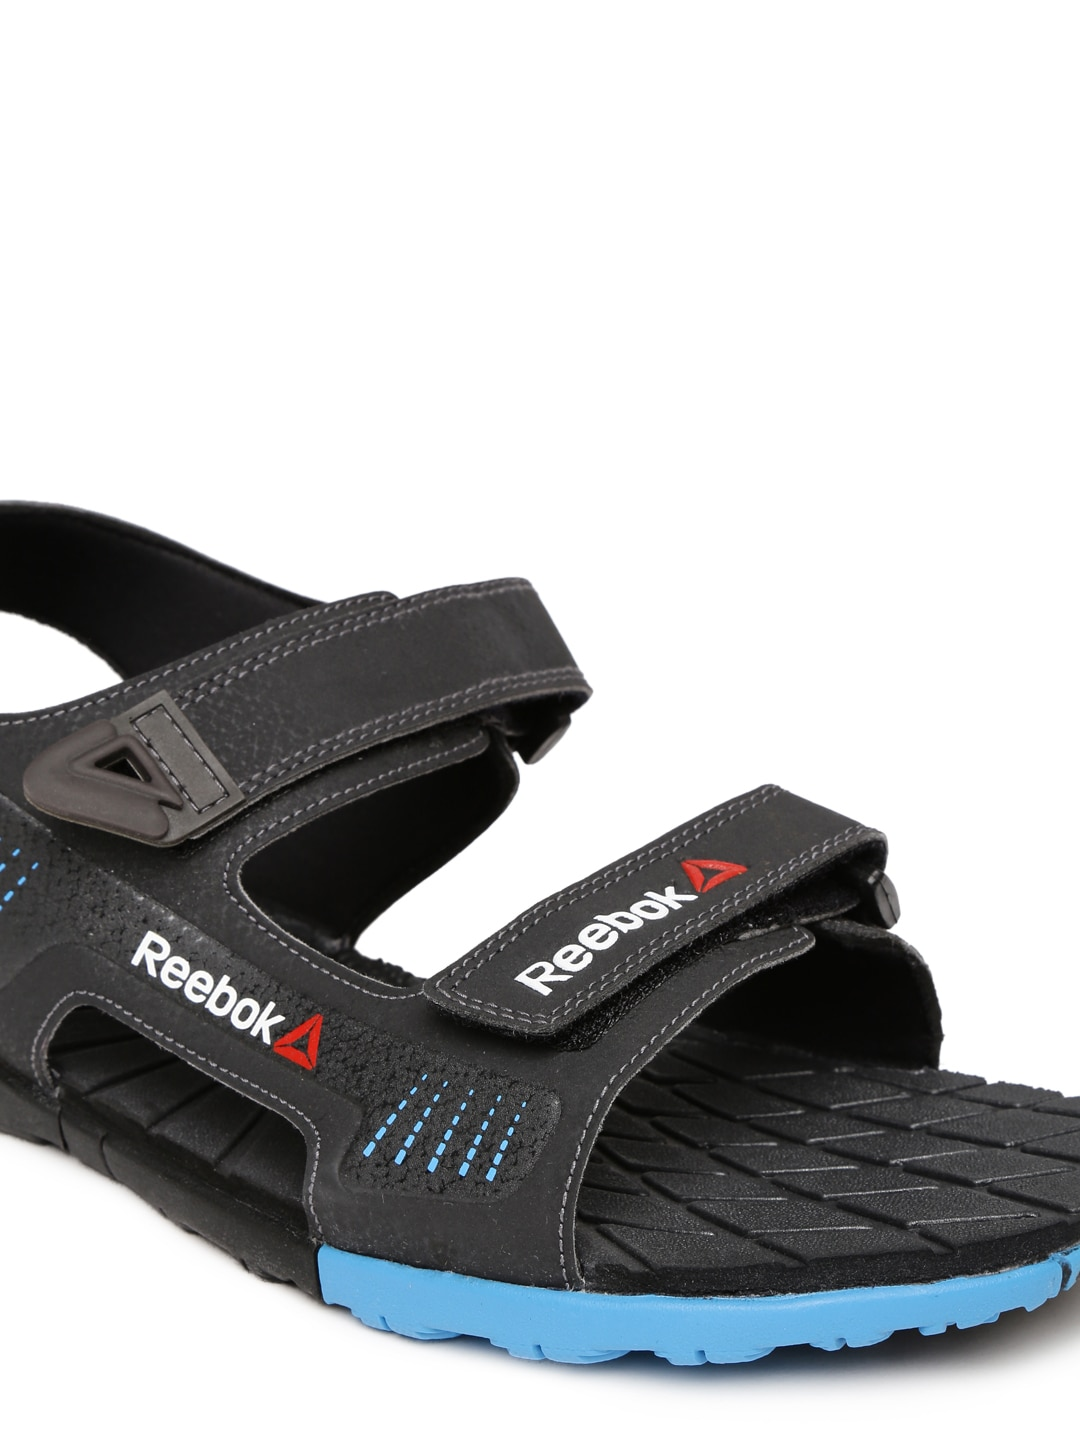 80e1d614b25e Cheap mens reebok flip flops Buy Online  OFF41% Discounted